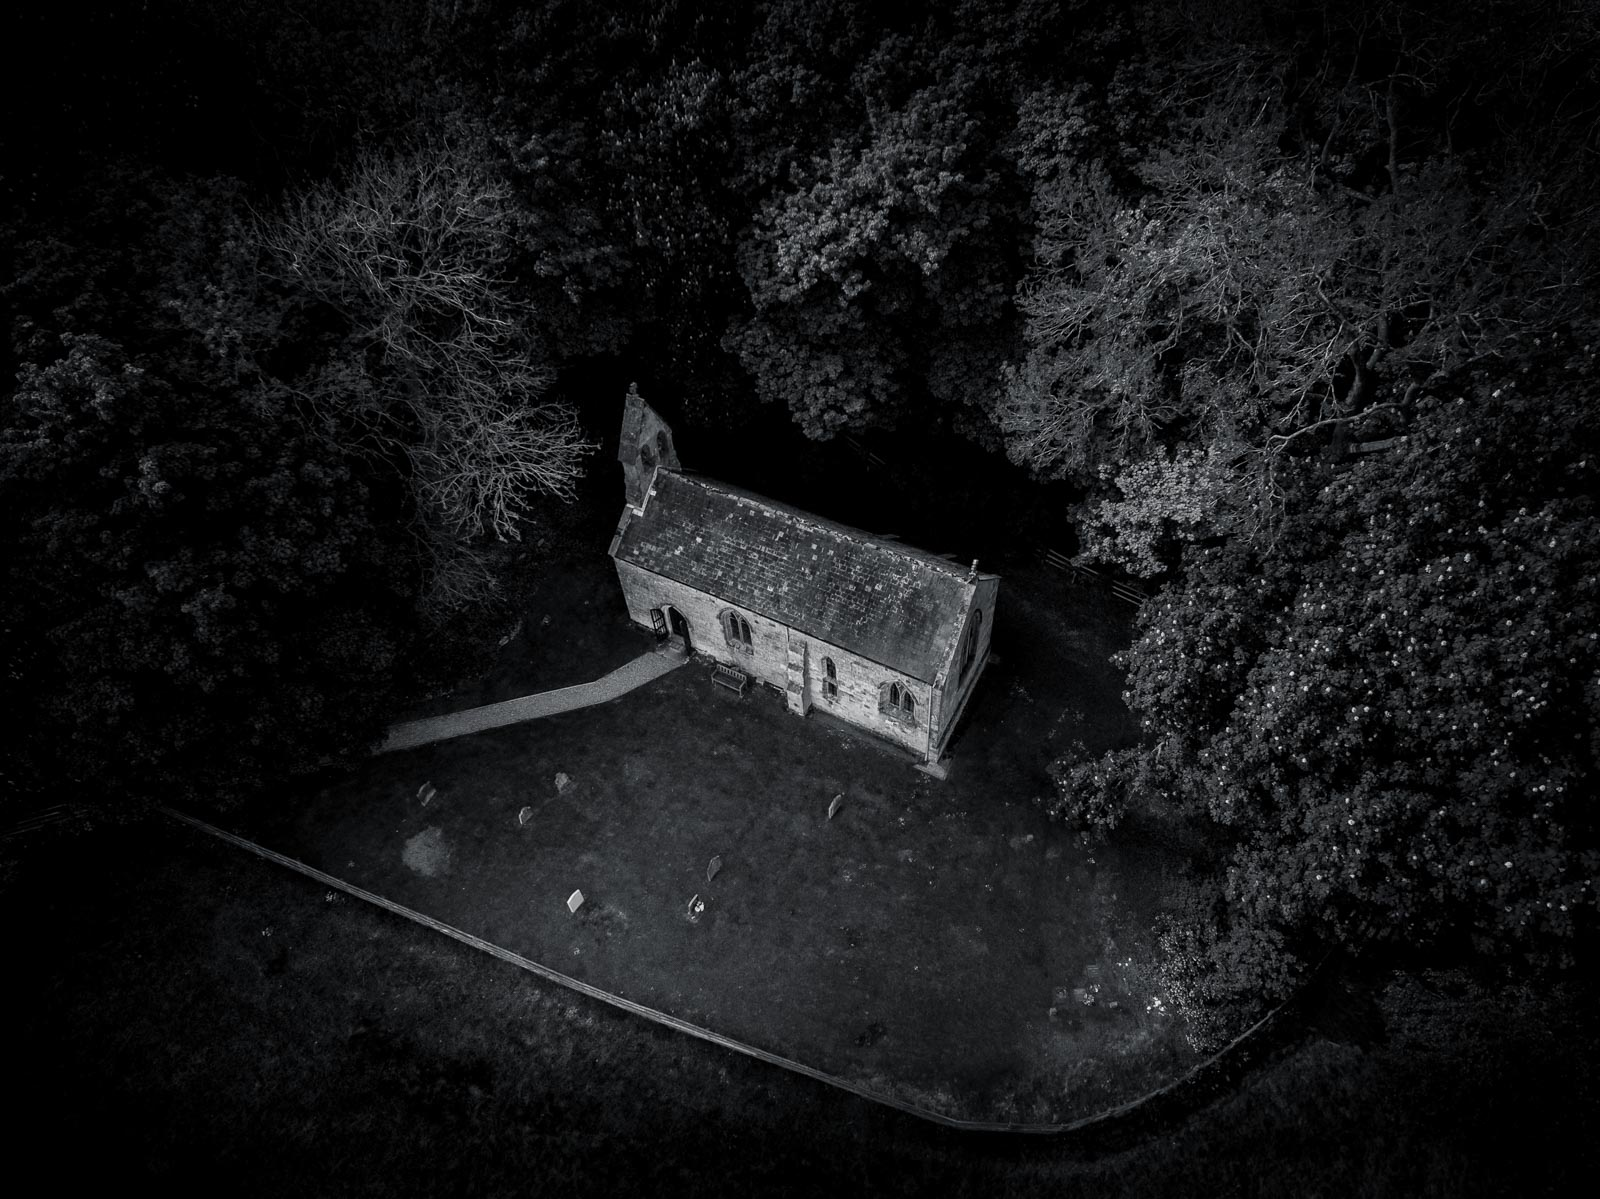 I processed this image to give a foreboding atmosphere.